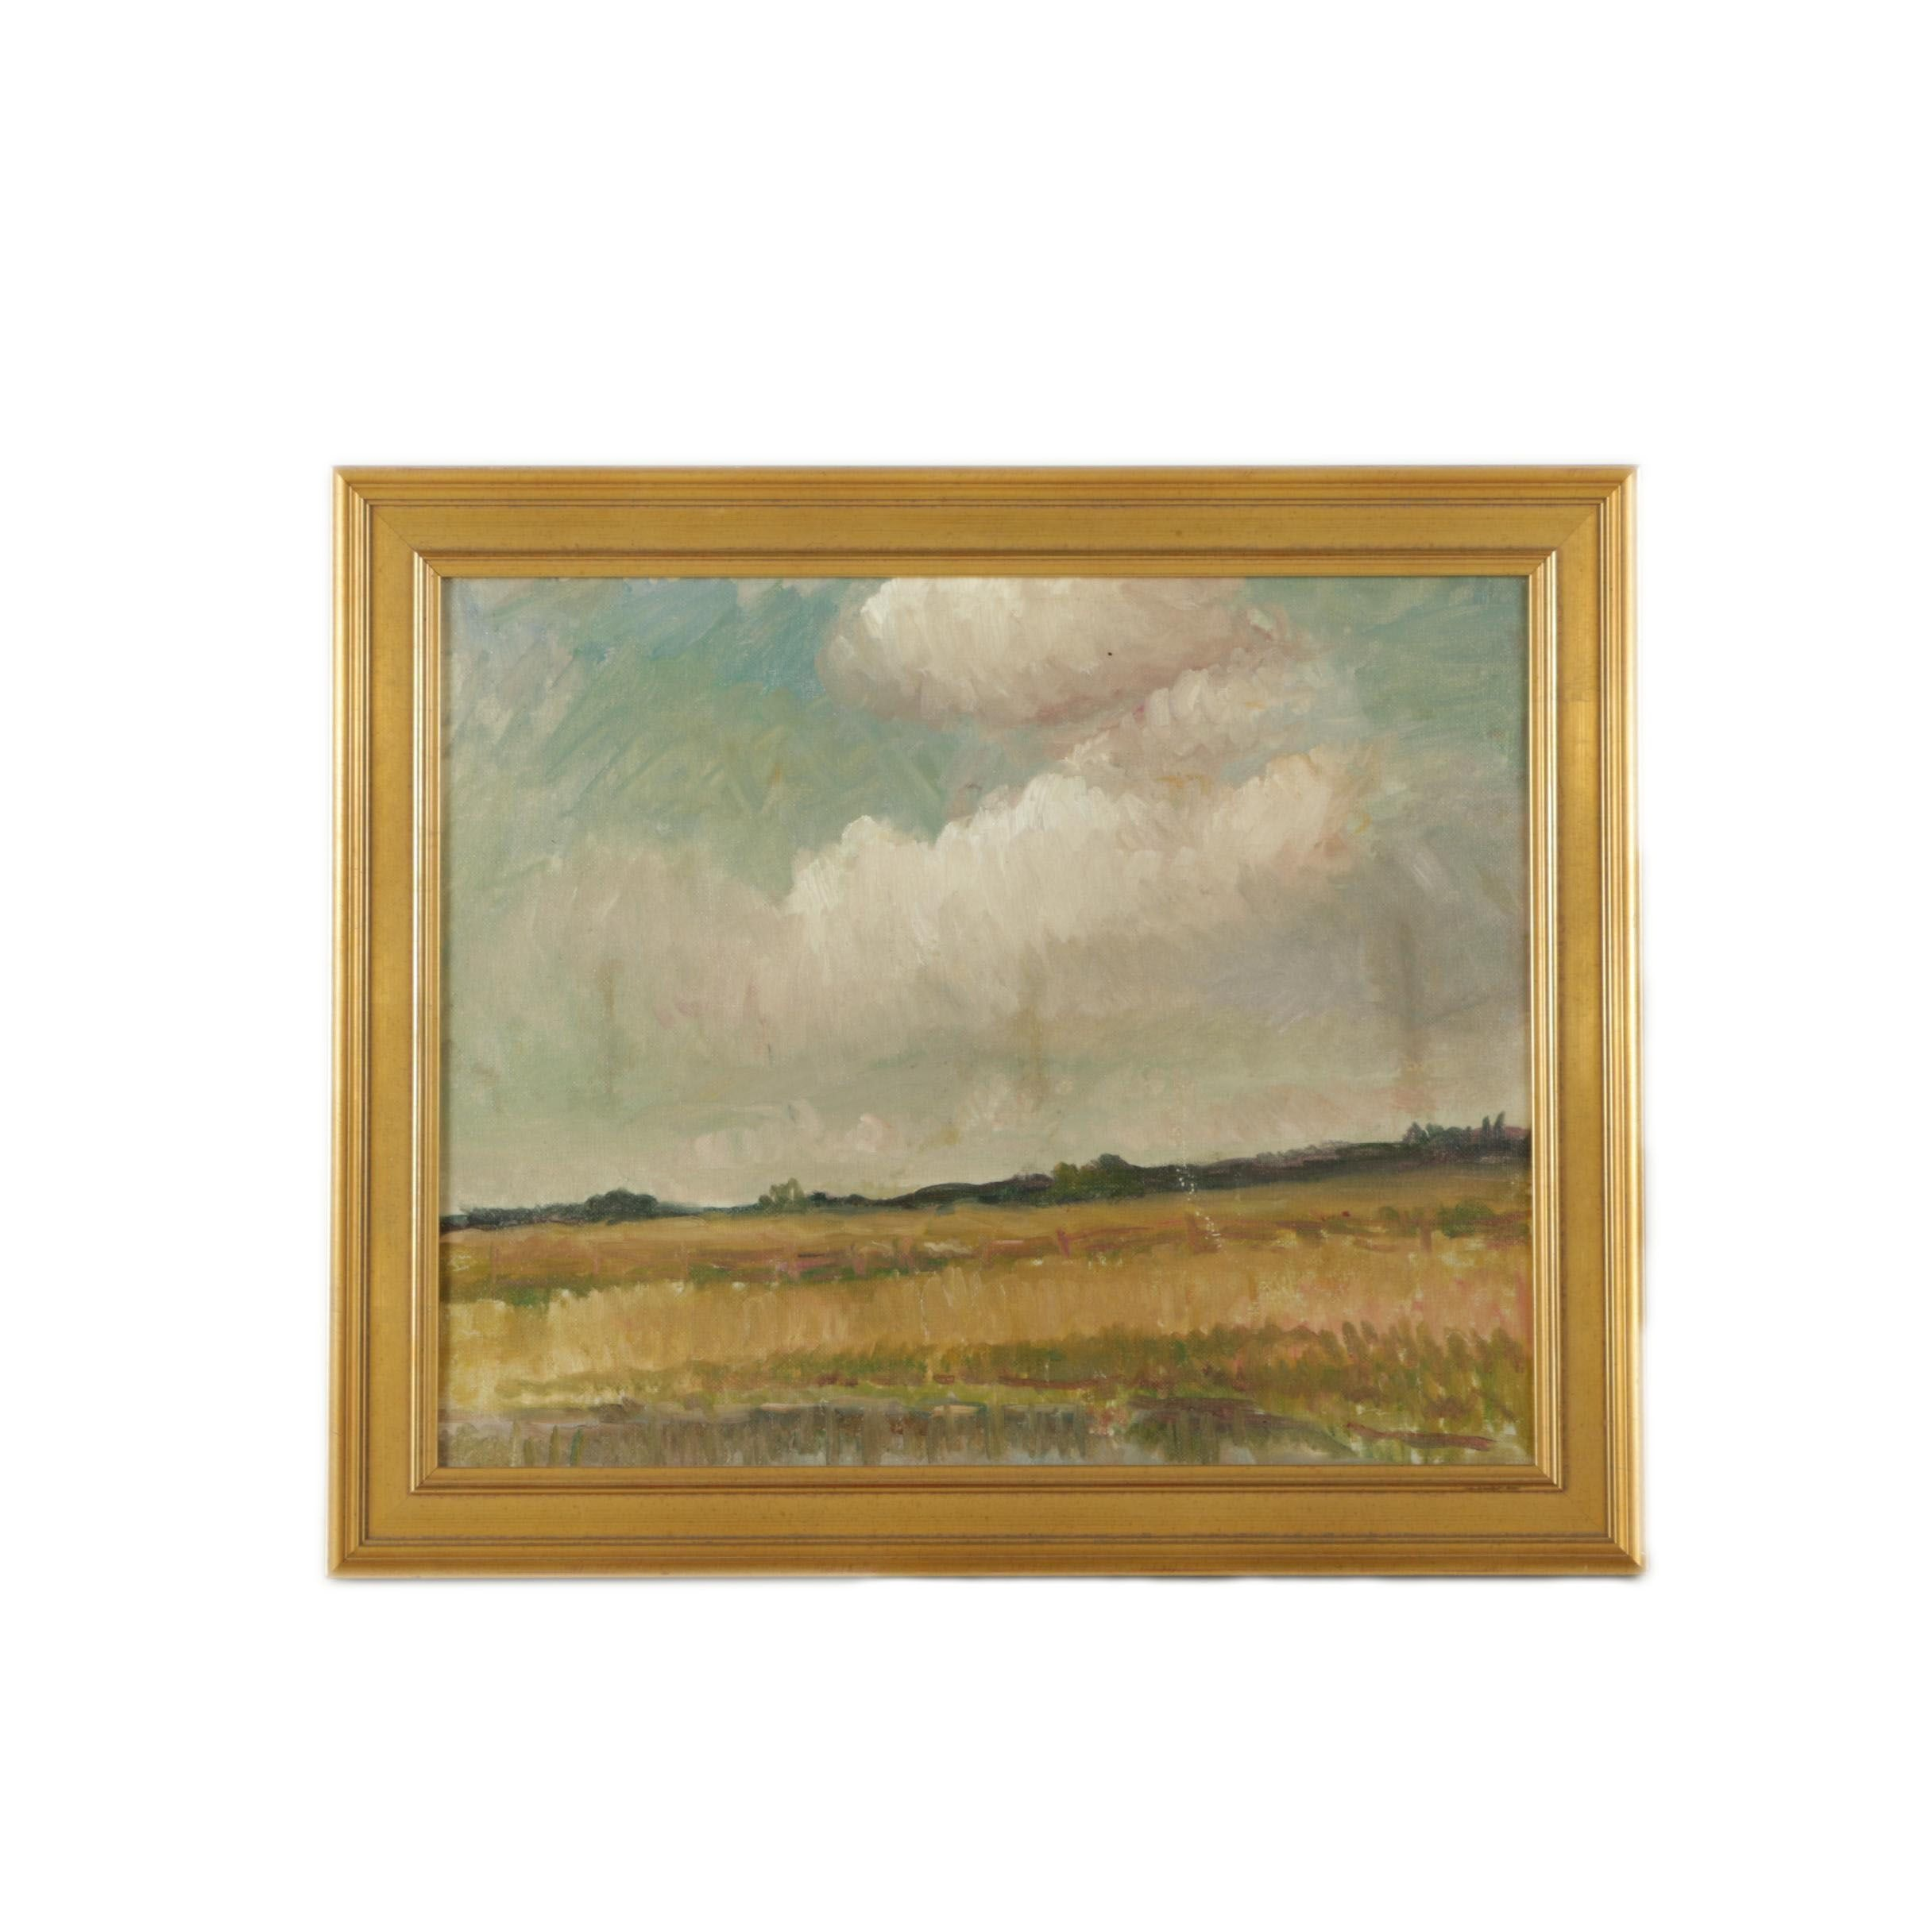 E. Mendenhall Oil Painting of a Landscape on Canvas